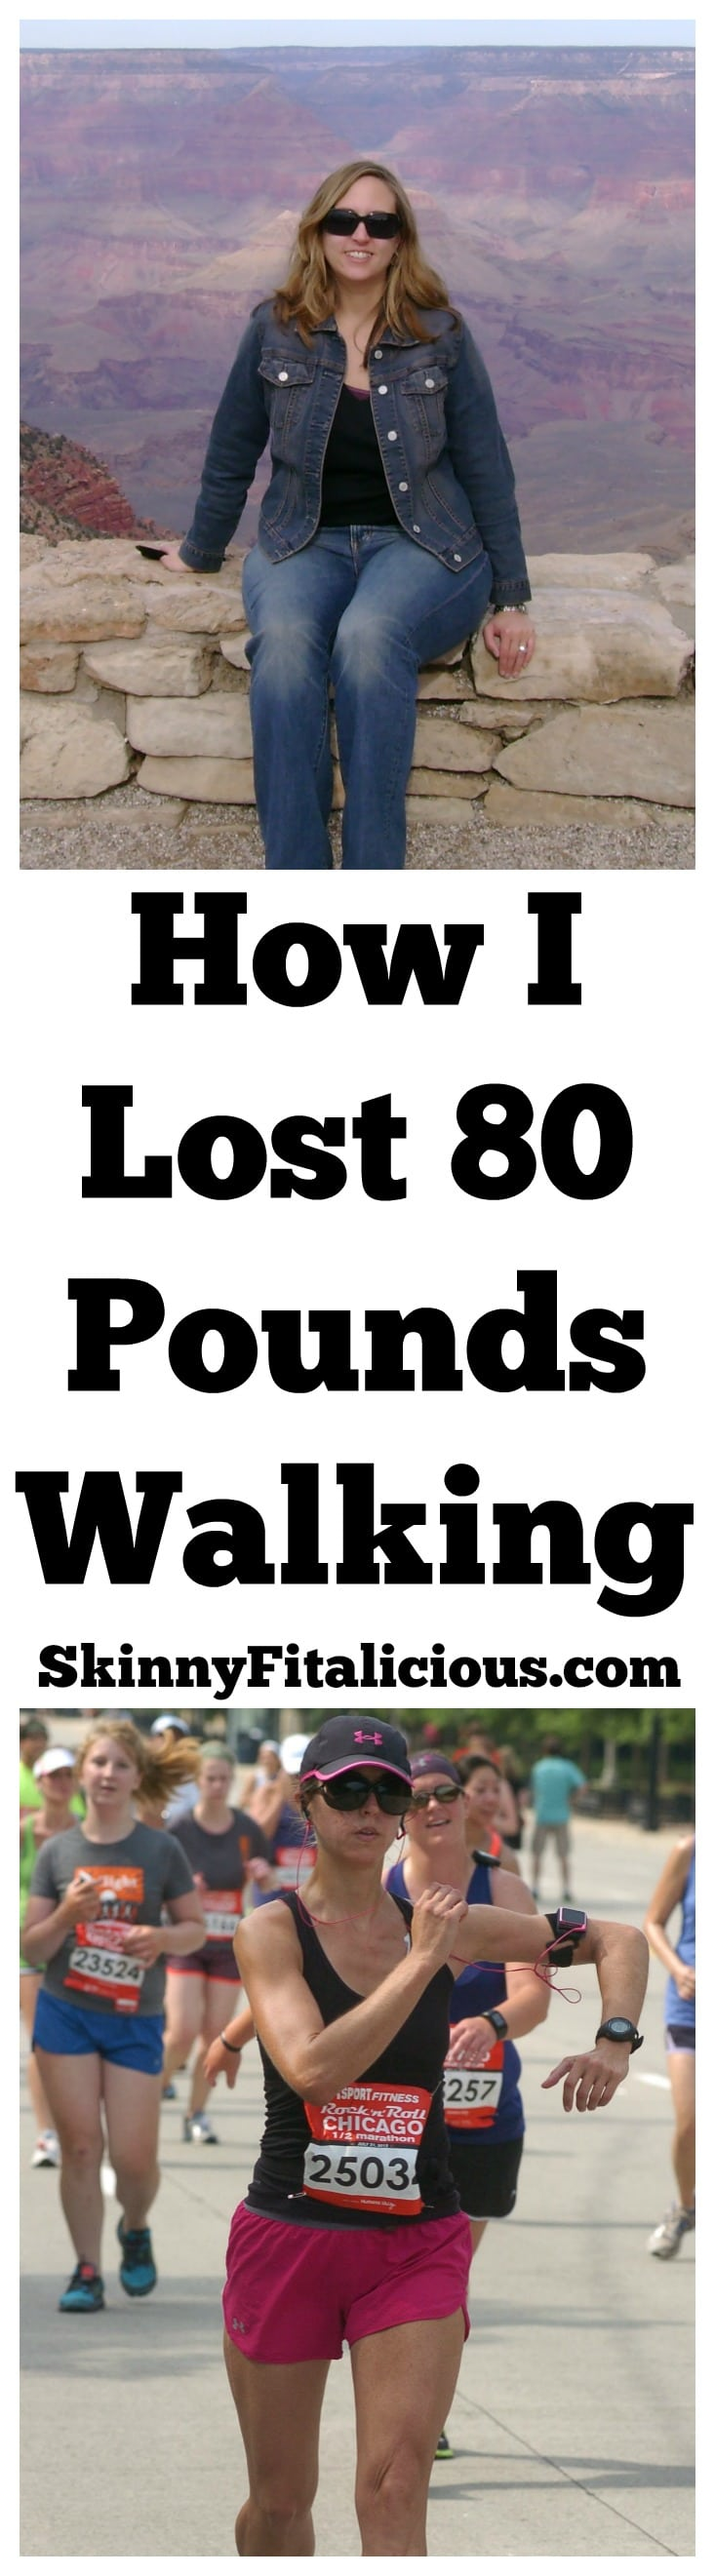 Walking For Weight Loss How I Lost 80 Pounds Walking Skinny